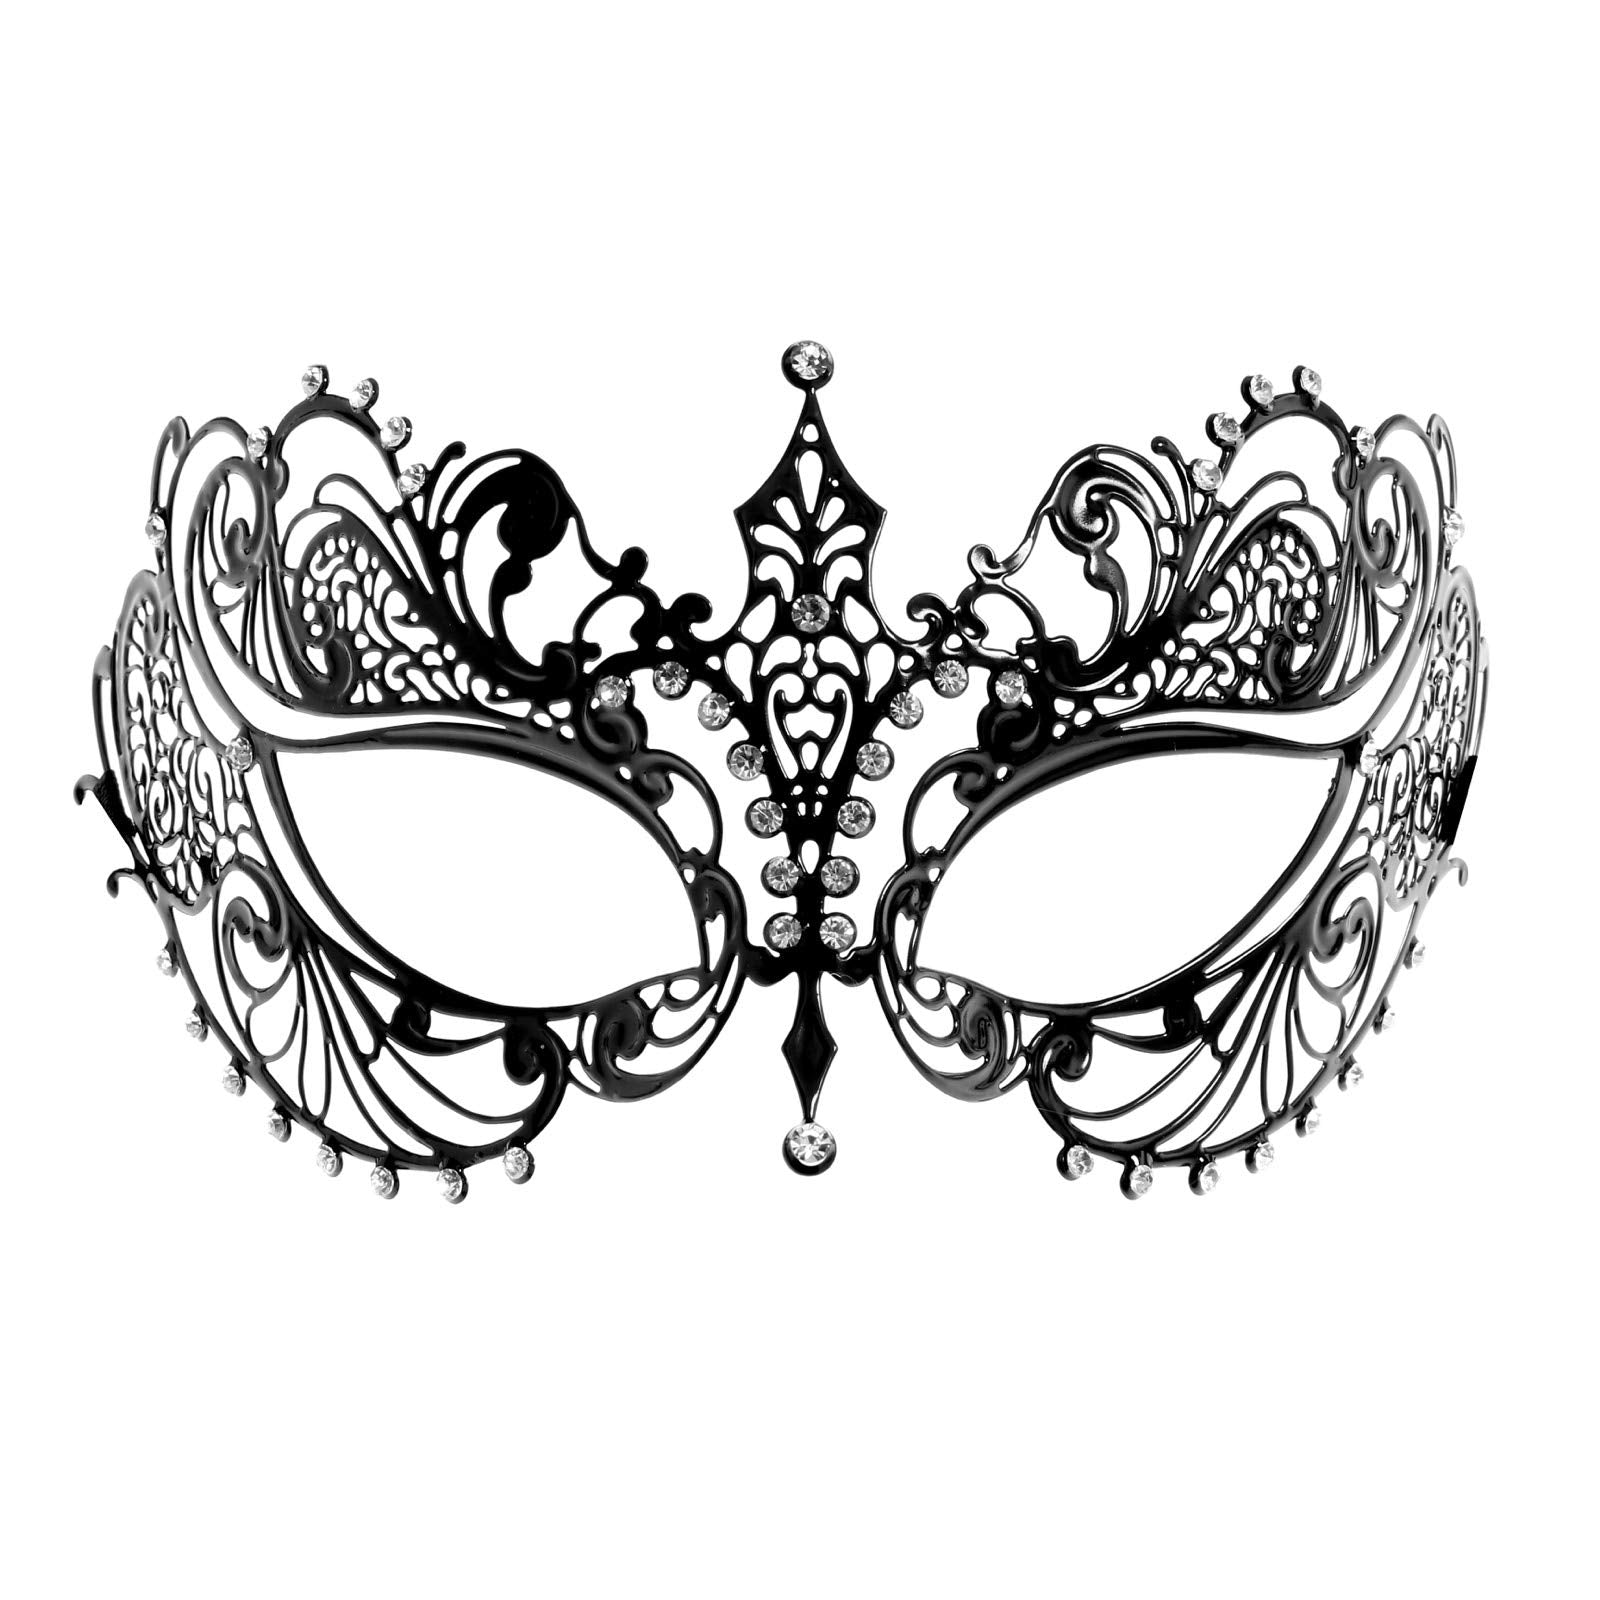 Gold Skull Bauta & Black Laser Cut Venetian Masquerade Mask Couple